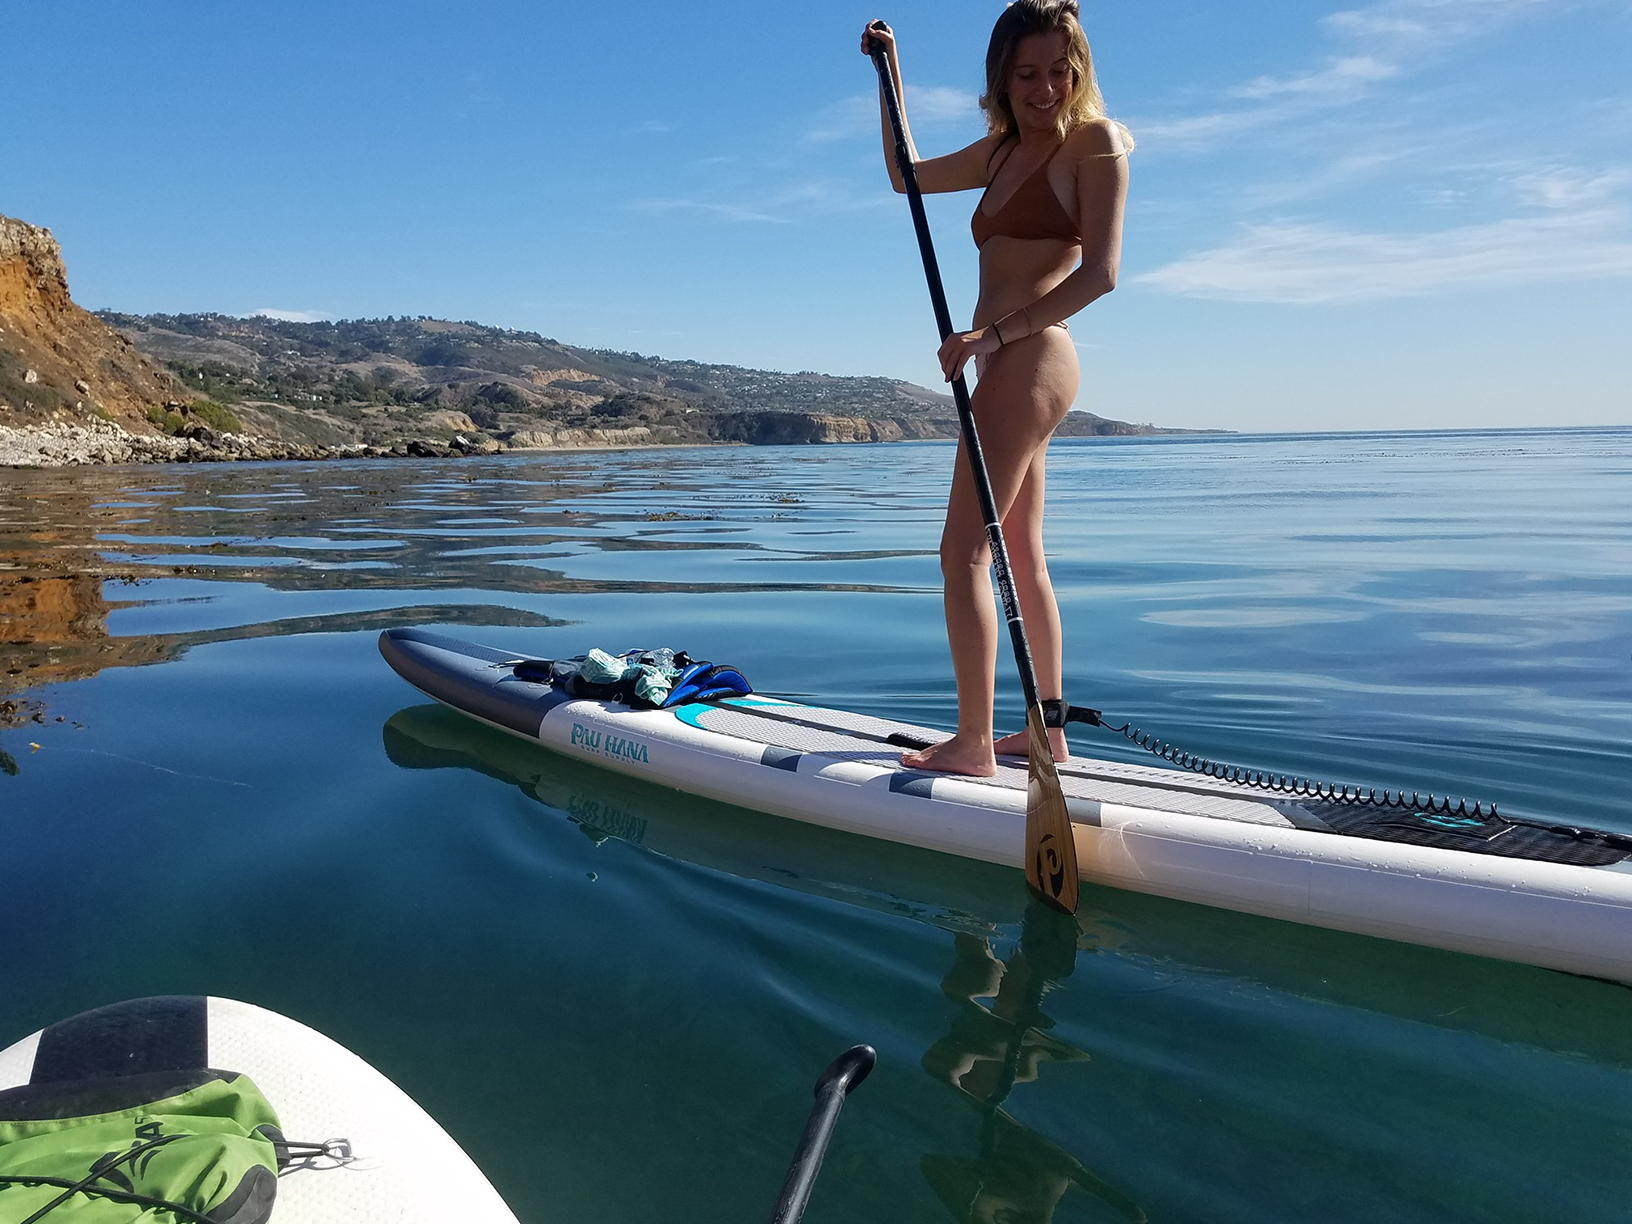 Paddling the Cadence paddle board in rancho Palos Verdes